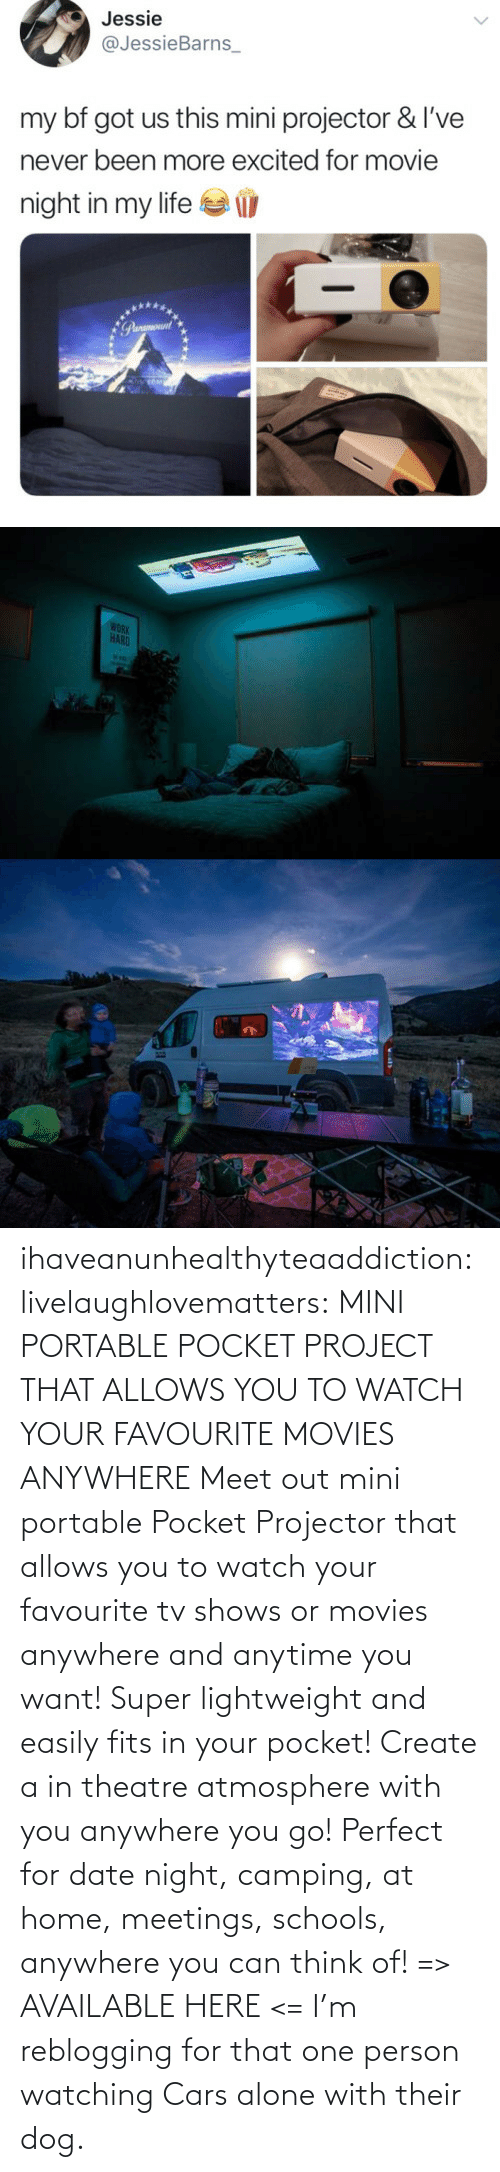 atmosphere: ihaveanunhealthyteaaddiction:  livelaughlovematters: MINI PORTABLE POCKET PROJECT THAT ALLOWS YOU TO WATCH YOUR FAVOURITE MOVIES ANYWHERE Meet out mini portable Pocket Projector that allows you to watch your favourite tv shows or movies anywhere and anytime you want! Super lightweight and easily fits in your pocket! Create a in theatre atmosphere with you anywhere you go! Perfect for date night, camping, at home, meetings, schools, anywhere you can think of! => AVAILABLE HERE <=    I'm reblogging for that one person watching Cars alone with their dog.